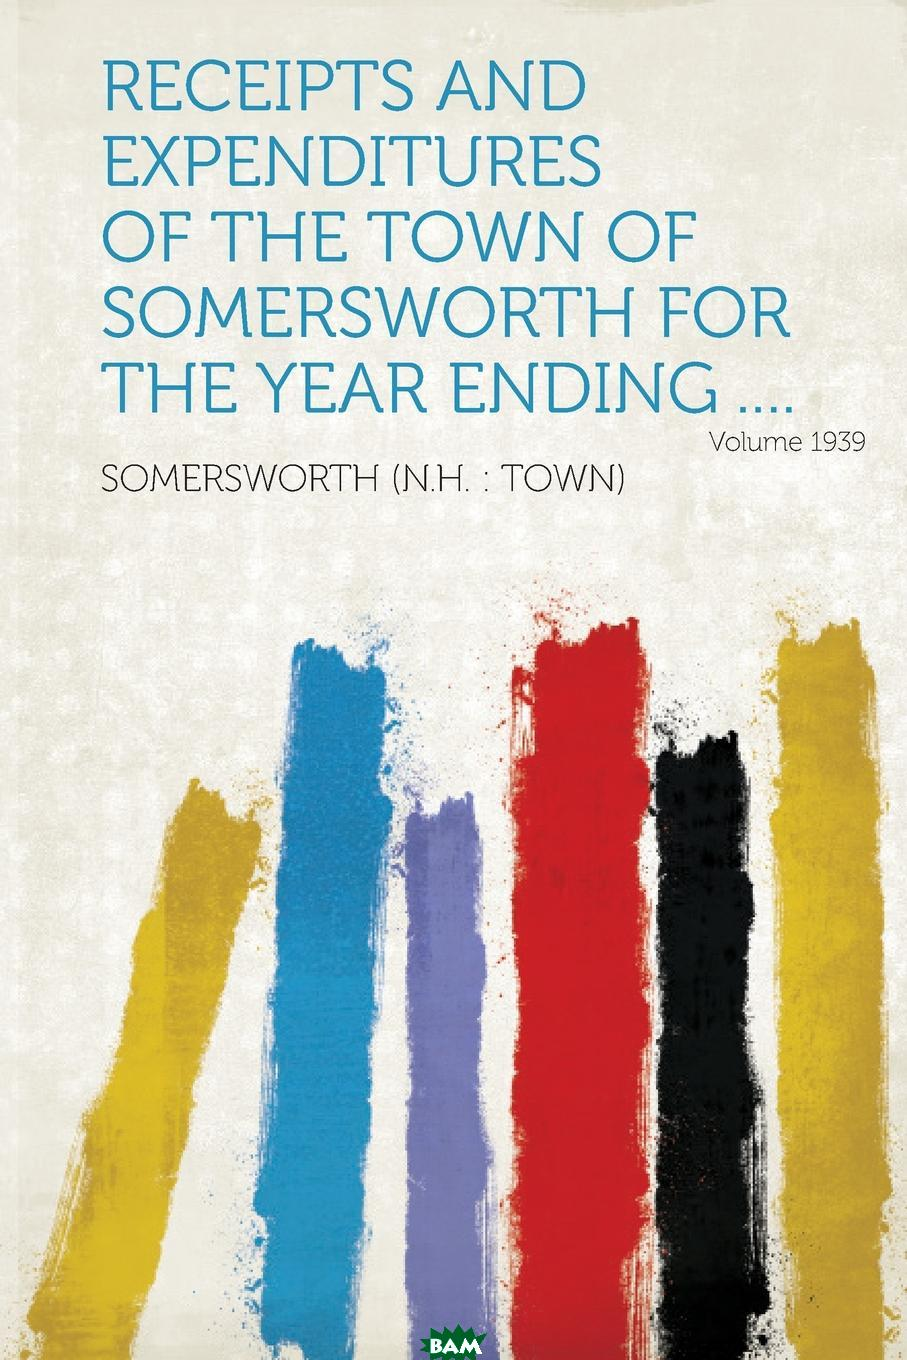 Купить Receipts and Expenditures of the Town of Somersworth for the Year Ending .... Year 1939, 9781314754063